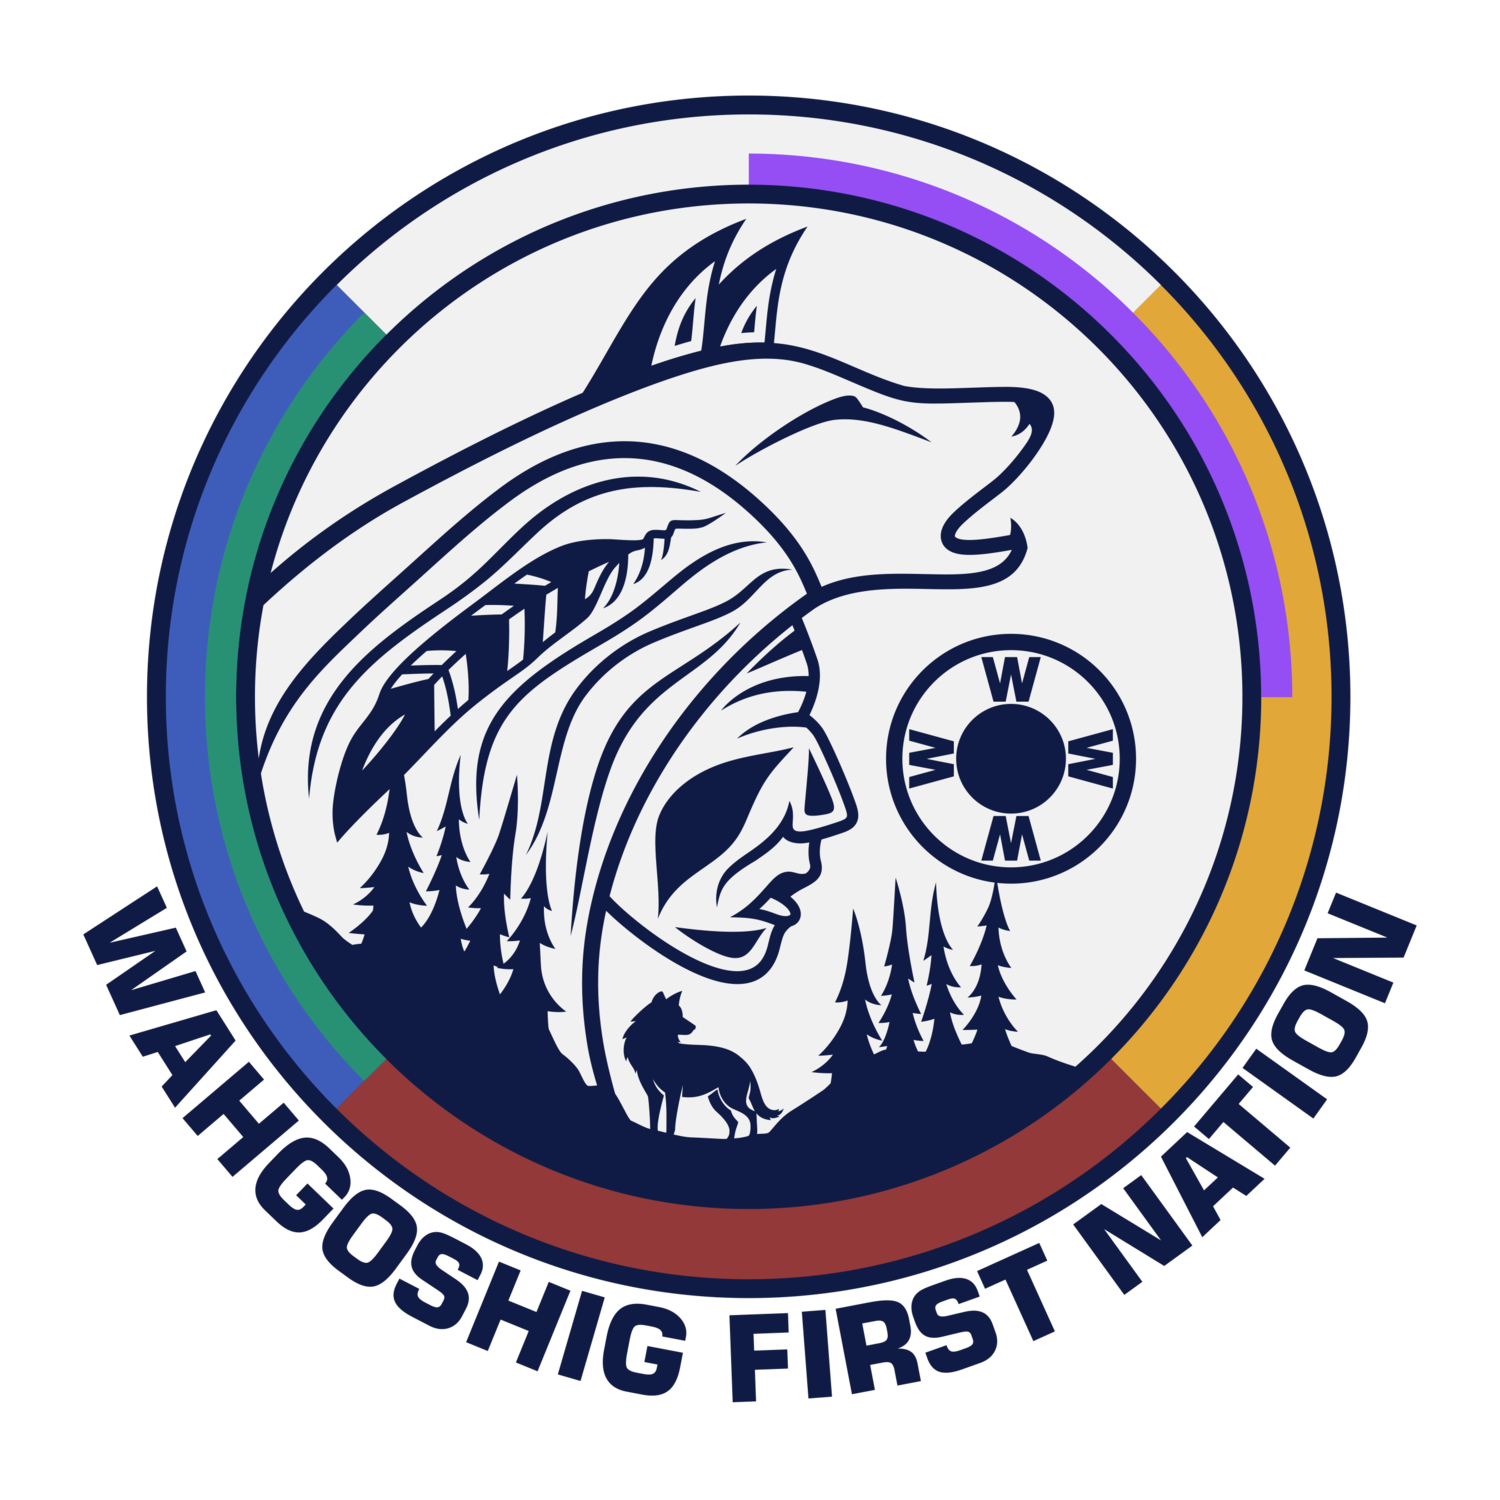 Wahgoshig First Nation